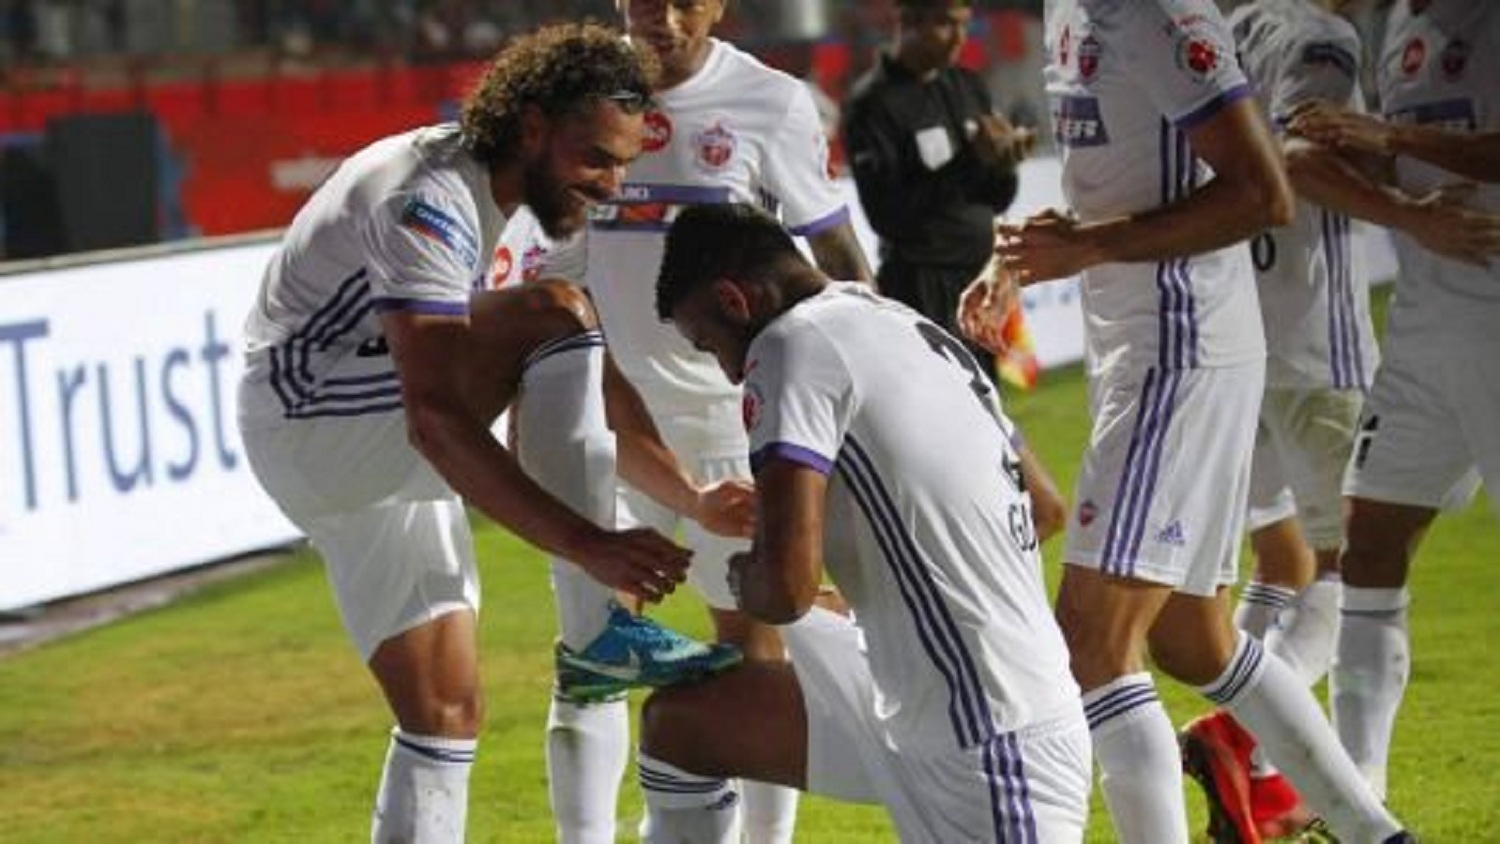 Adil Khan, apart from being one of the key members in defence, has also contributed with goals for FC Pune City | Image credit: ISL